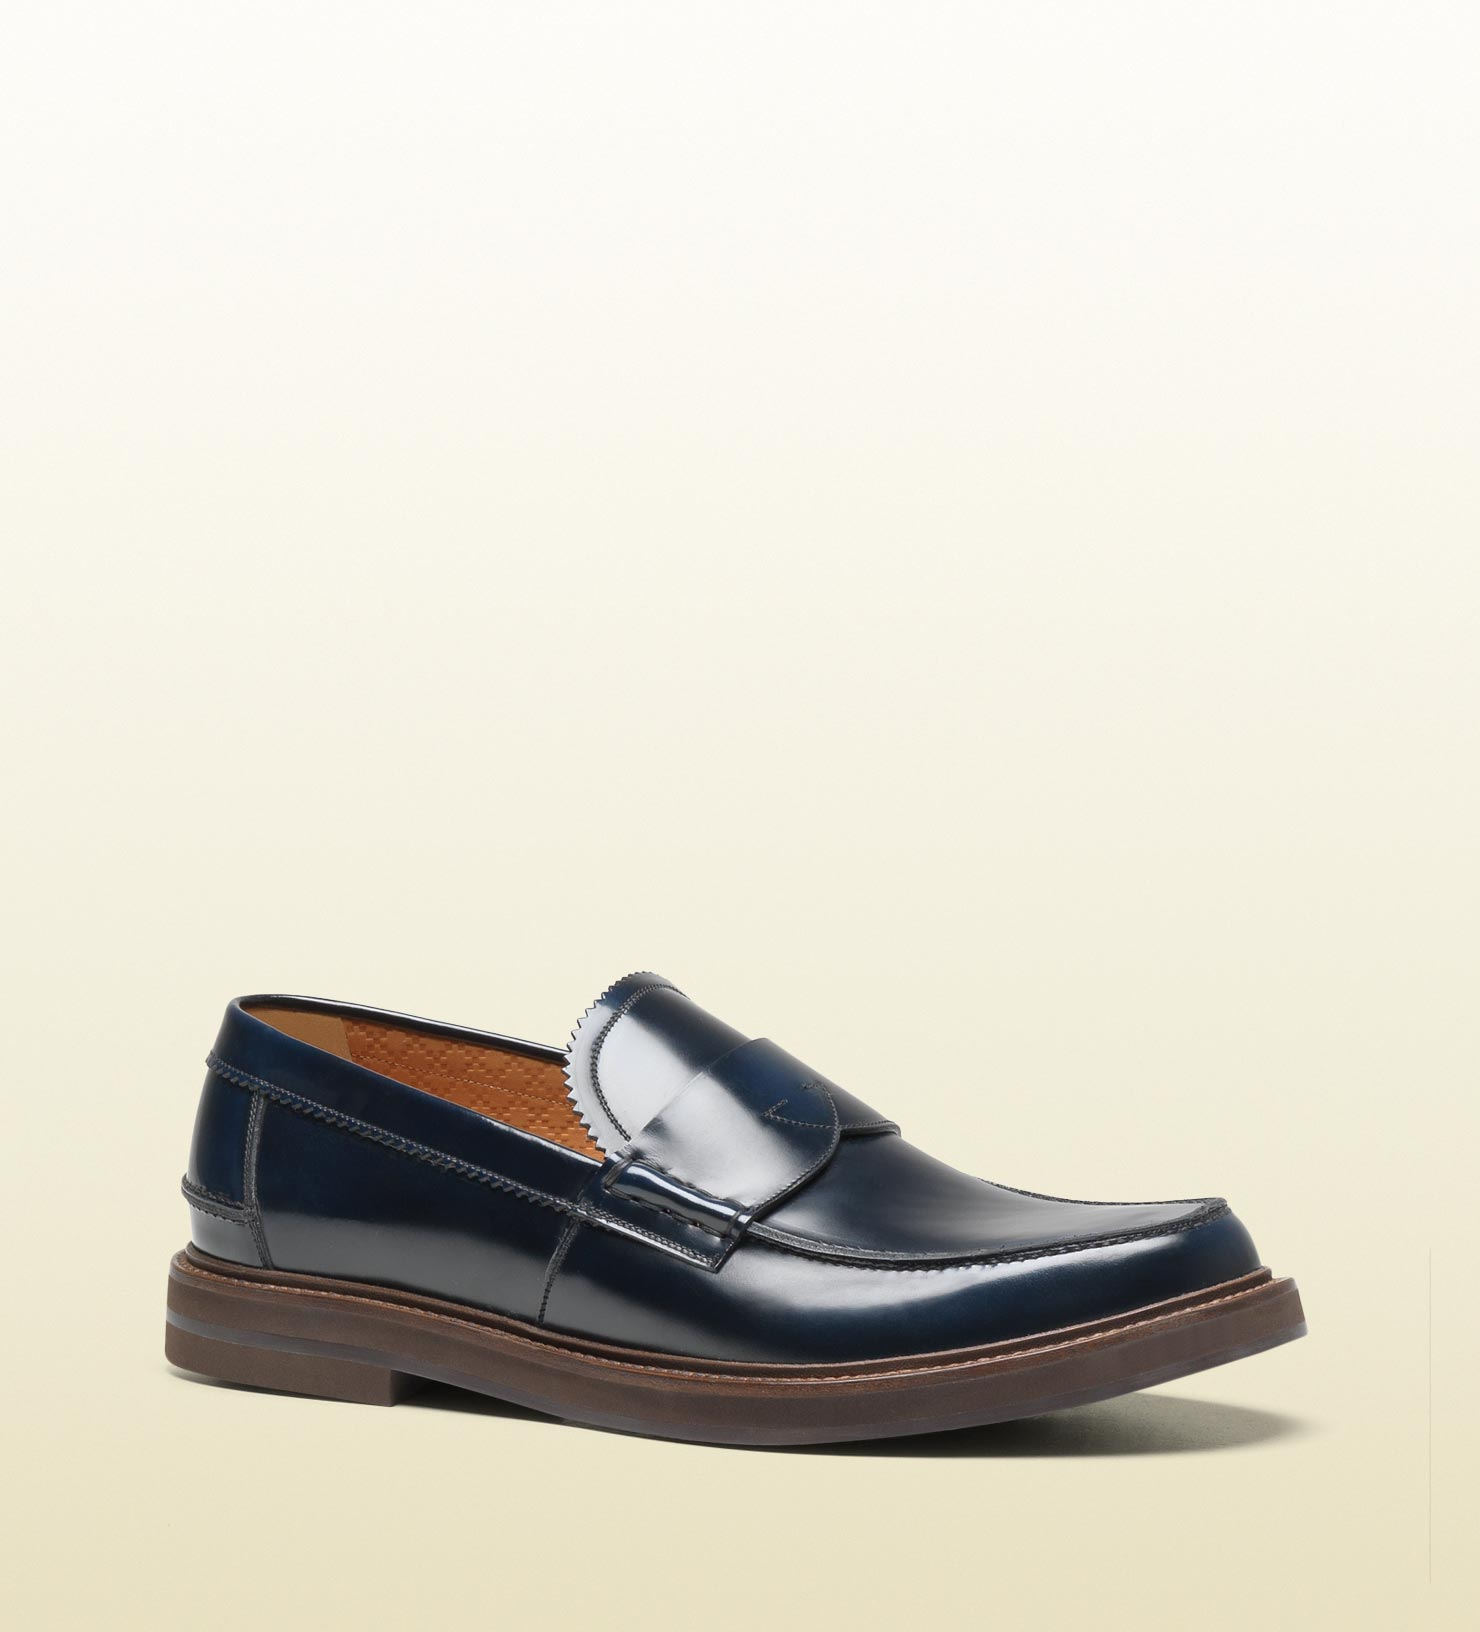 d3941ee822d Tag Mens Gucci Black Loafer — waldon.protese-de-silicone.info